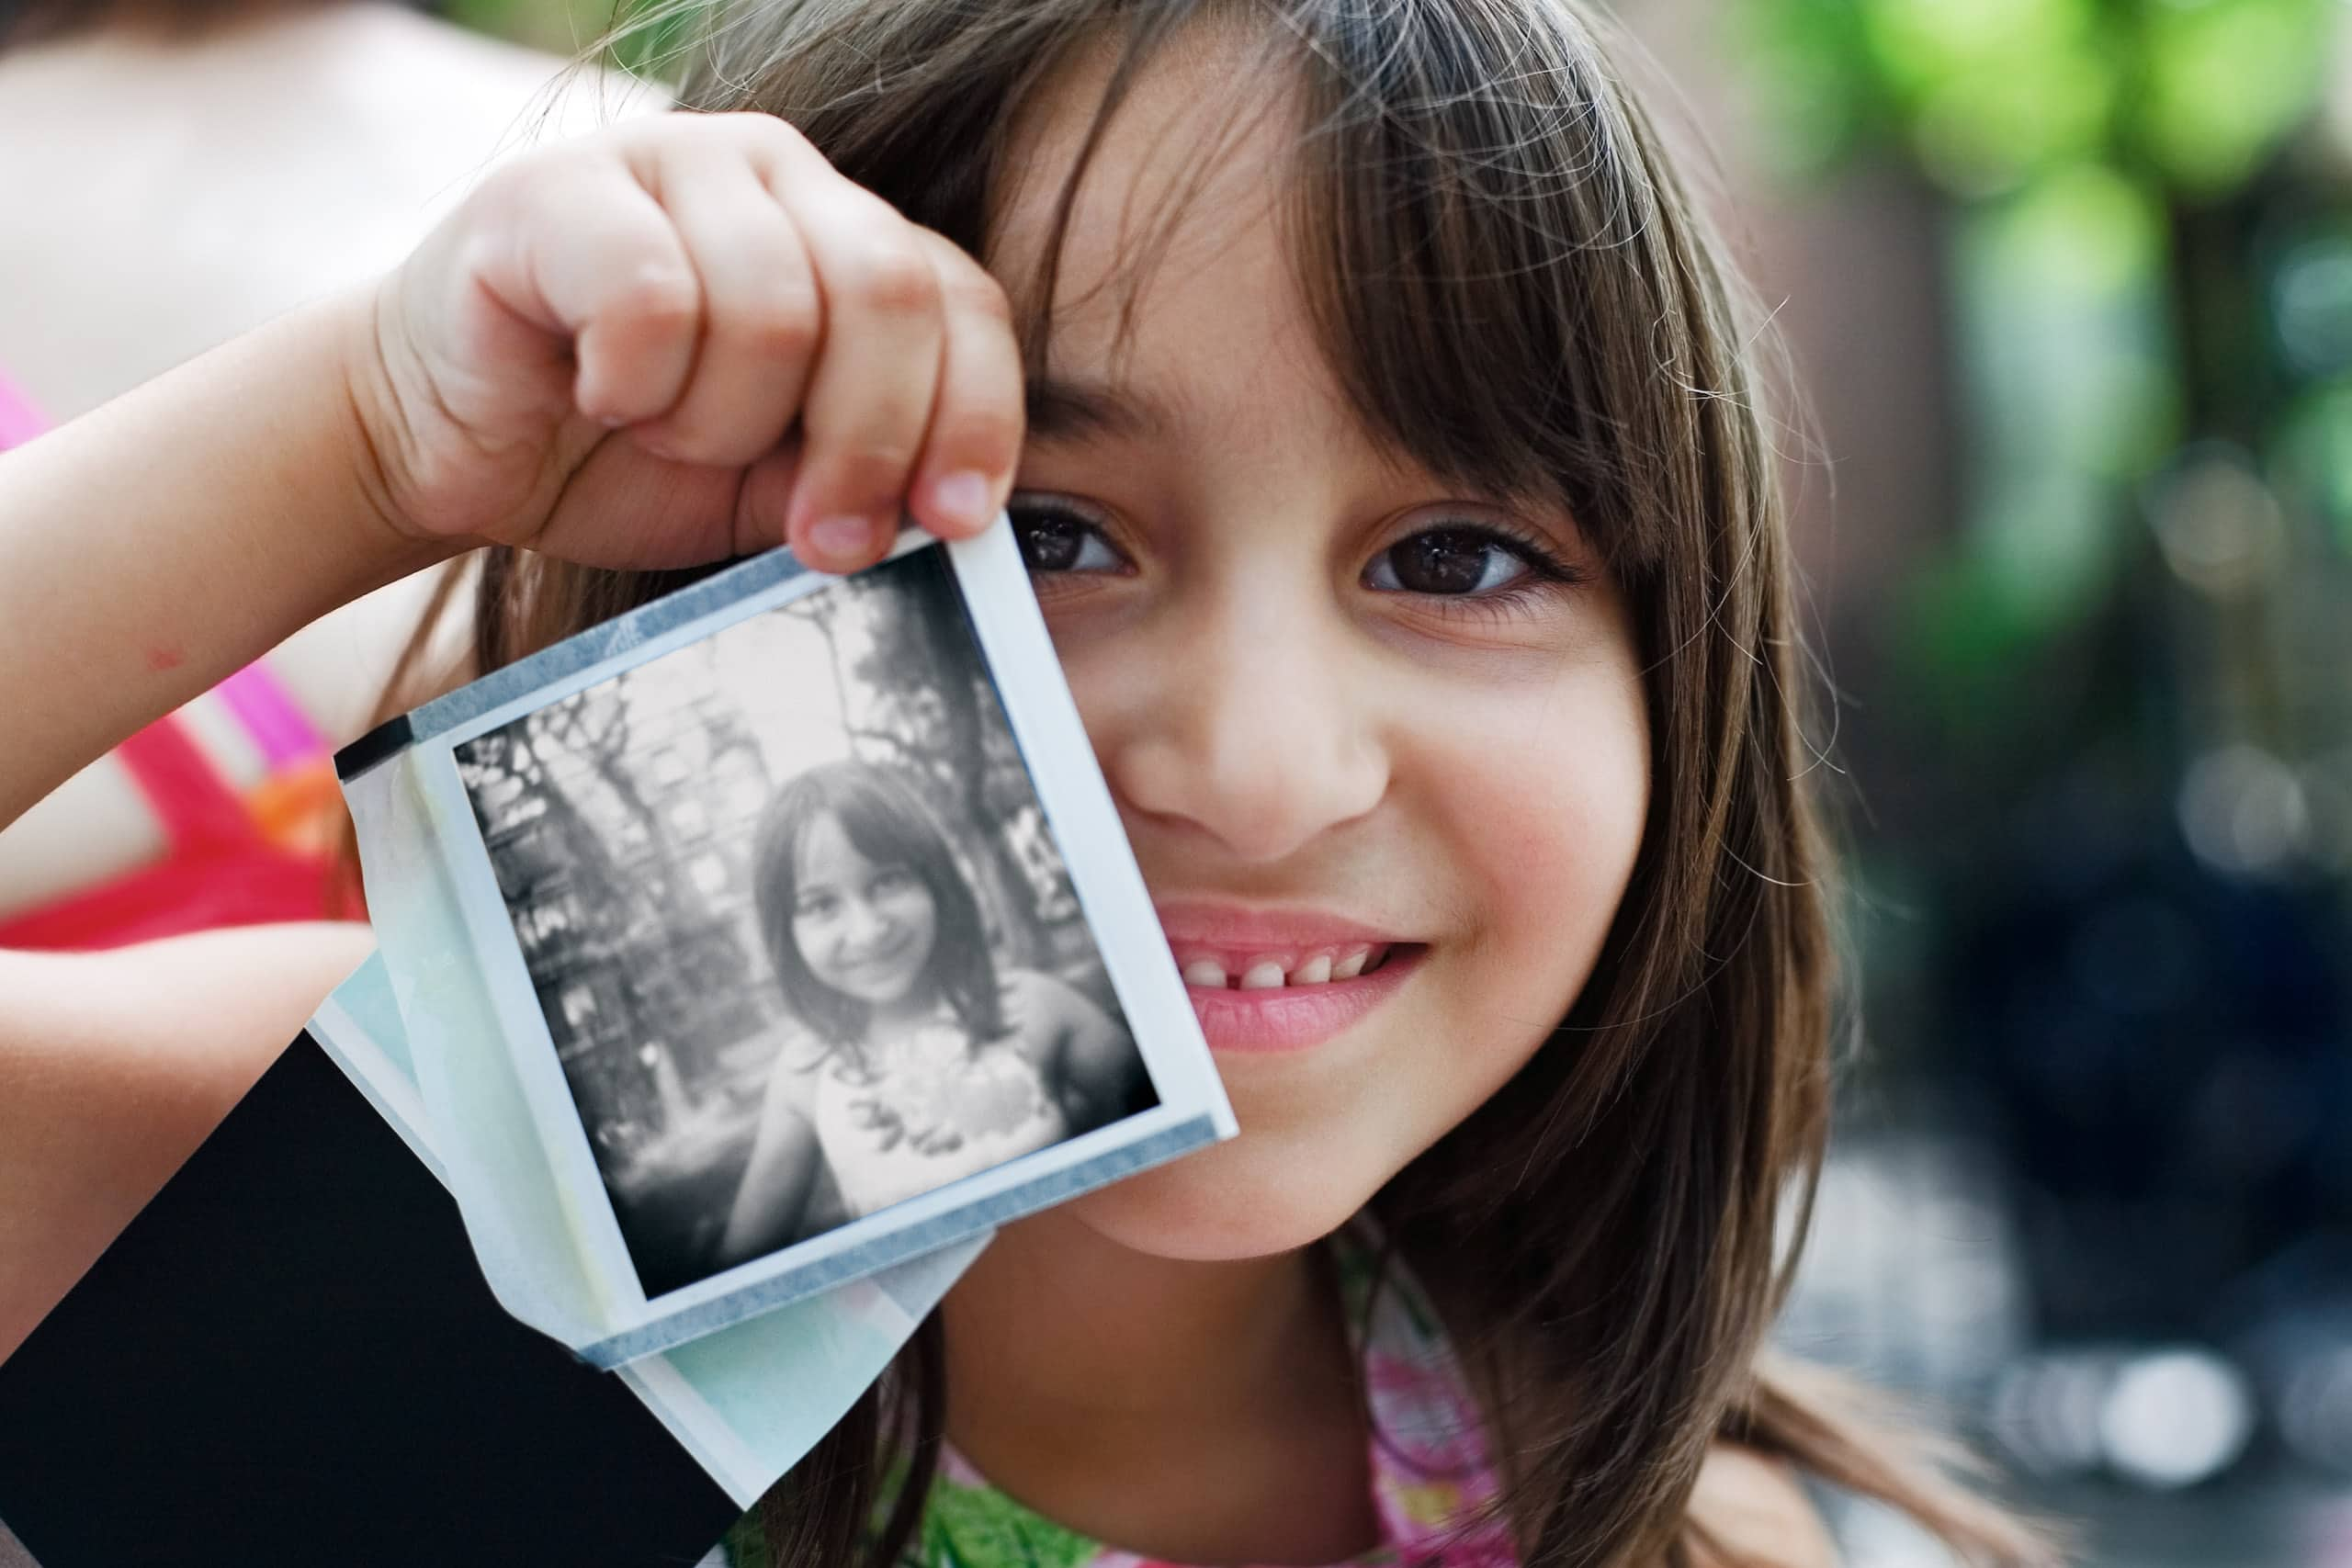 Digital image from the 1 Earth City (aka NYChildren) portrait photography series by Danny Goldfield